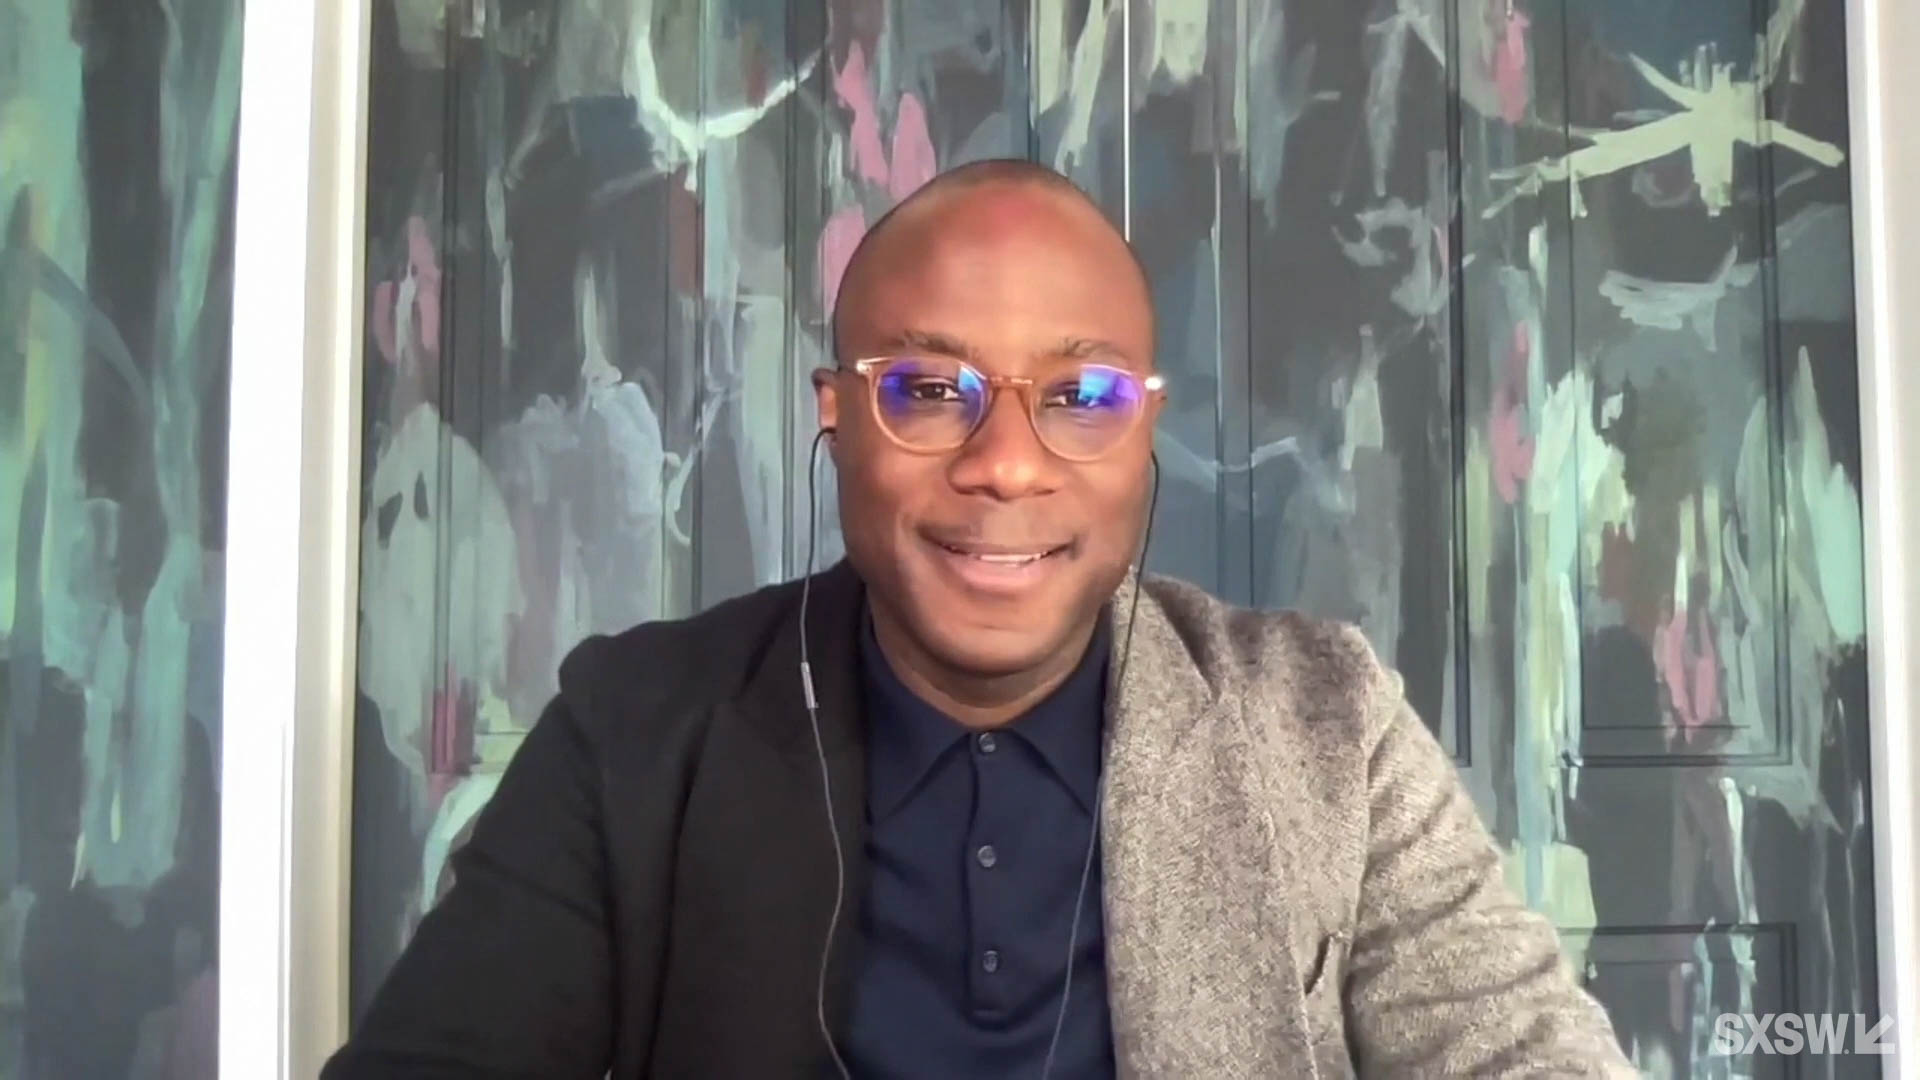 """Barry Jenkins answers questions at the SXSW Film Festival Premiere of """"From Moonlight to The Underground Railroad - Barry Jenkins & Composer Nicholas Britell"""" during SXSW Online on March 16, 2021."""